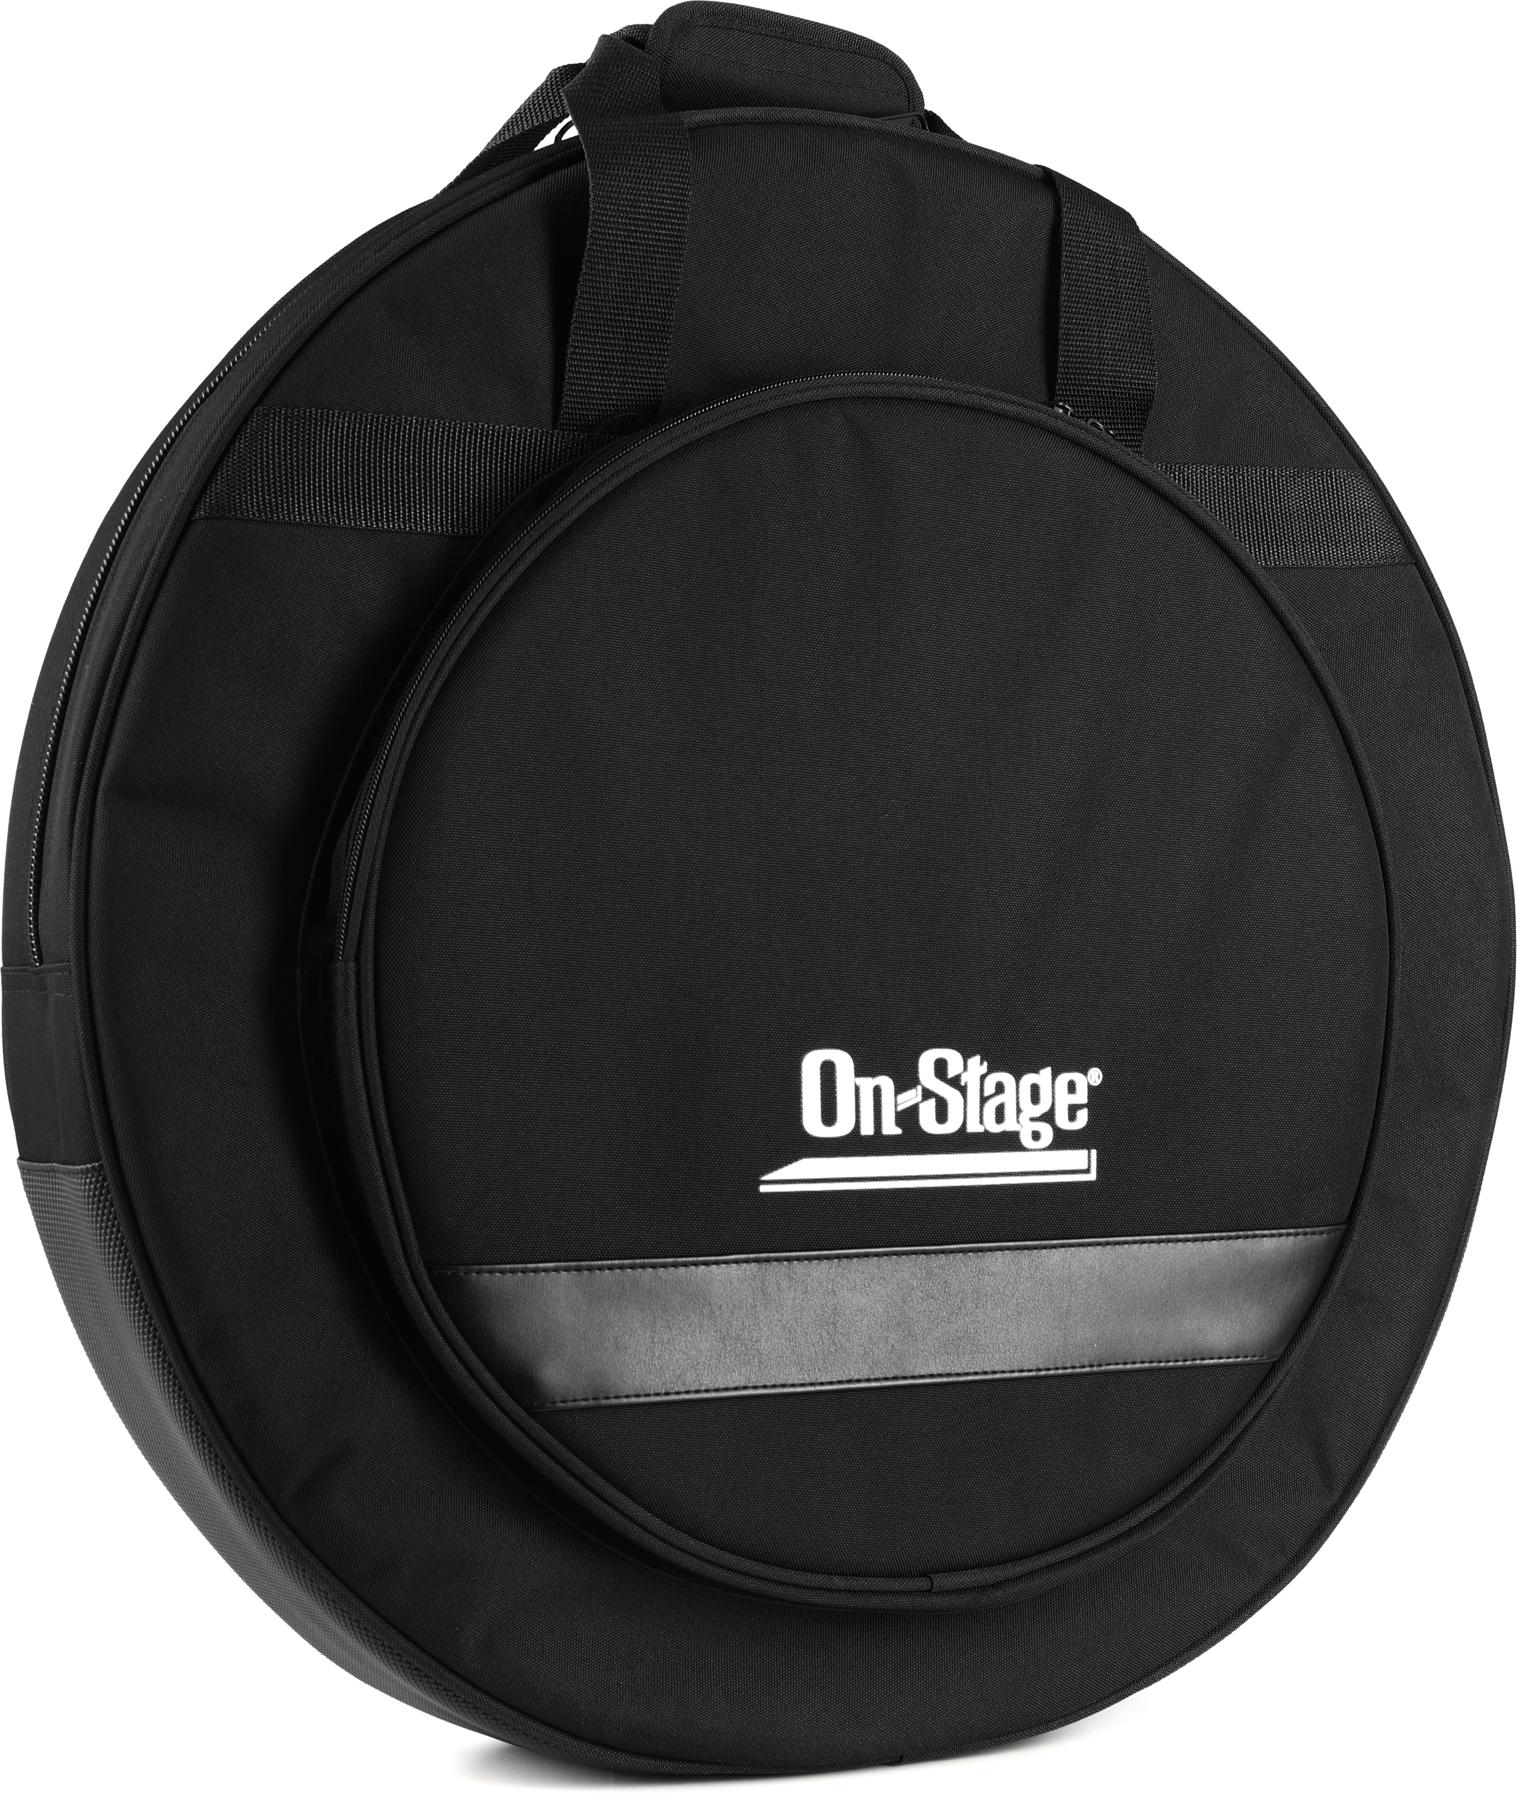 On-Stage CB4000 Deluxe Cymbal Bag 22""